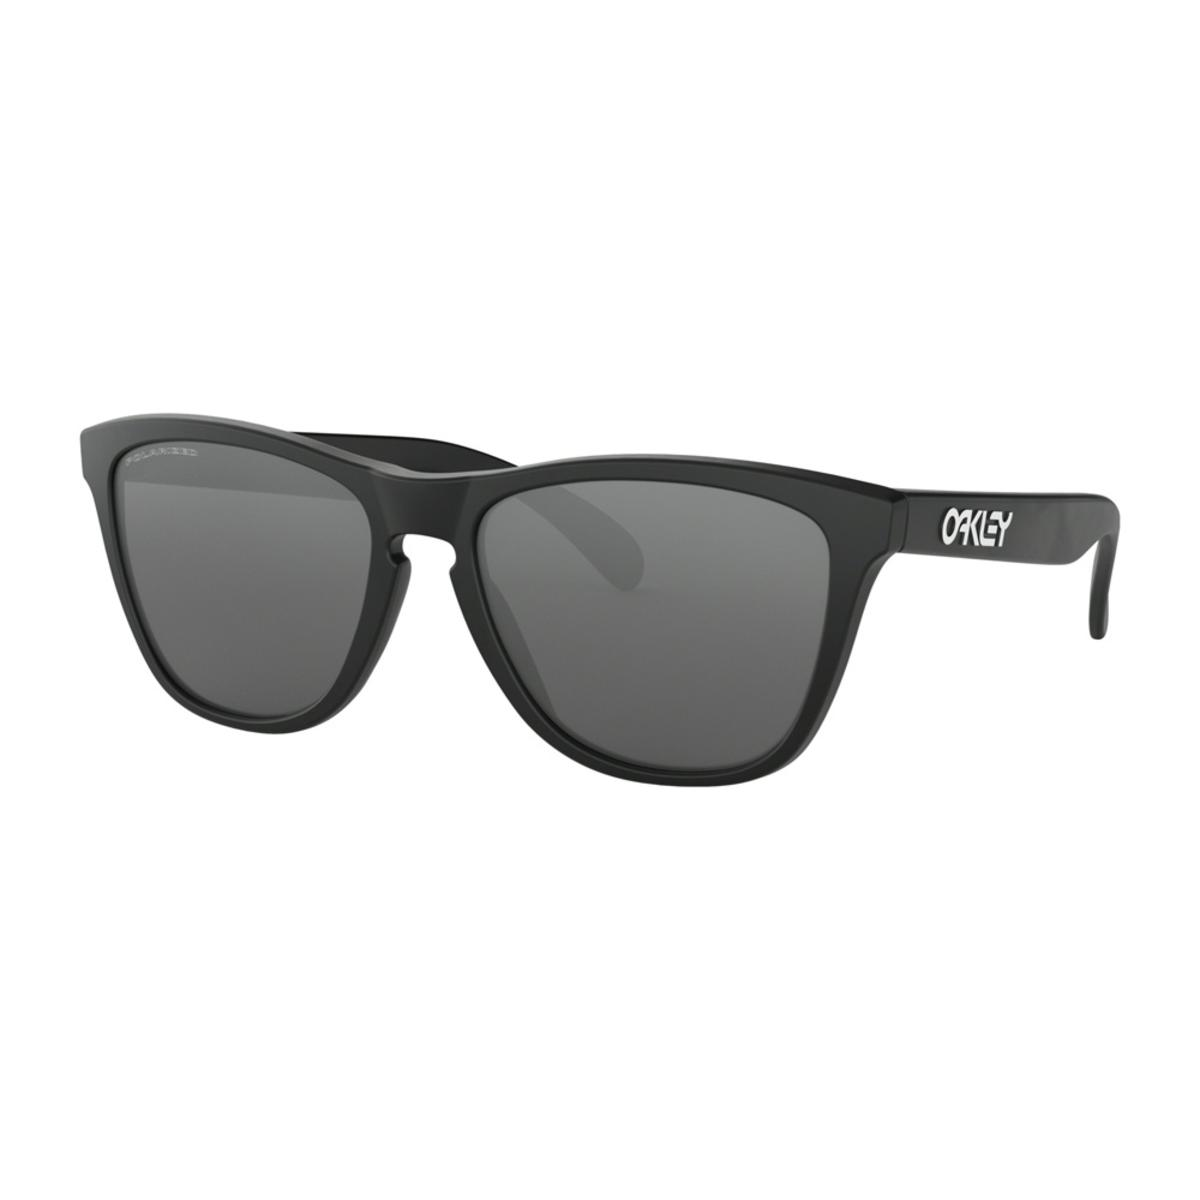 415b07a642 Oakley Frogskins Matte Black Sunglasses w Black Iridium Polarized - The  Warming Store